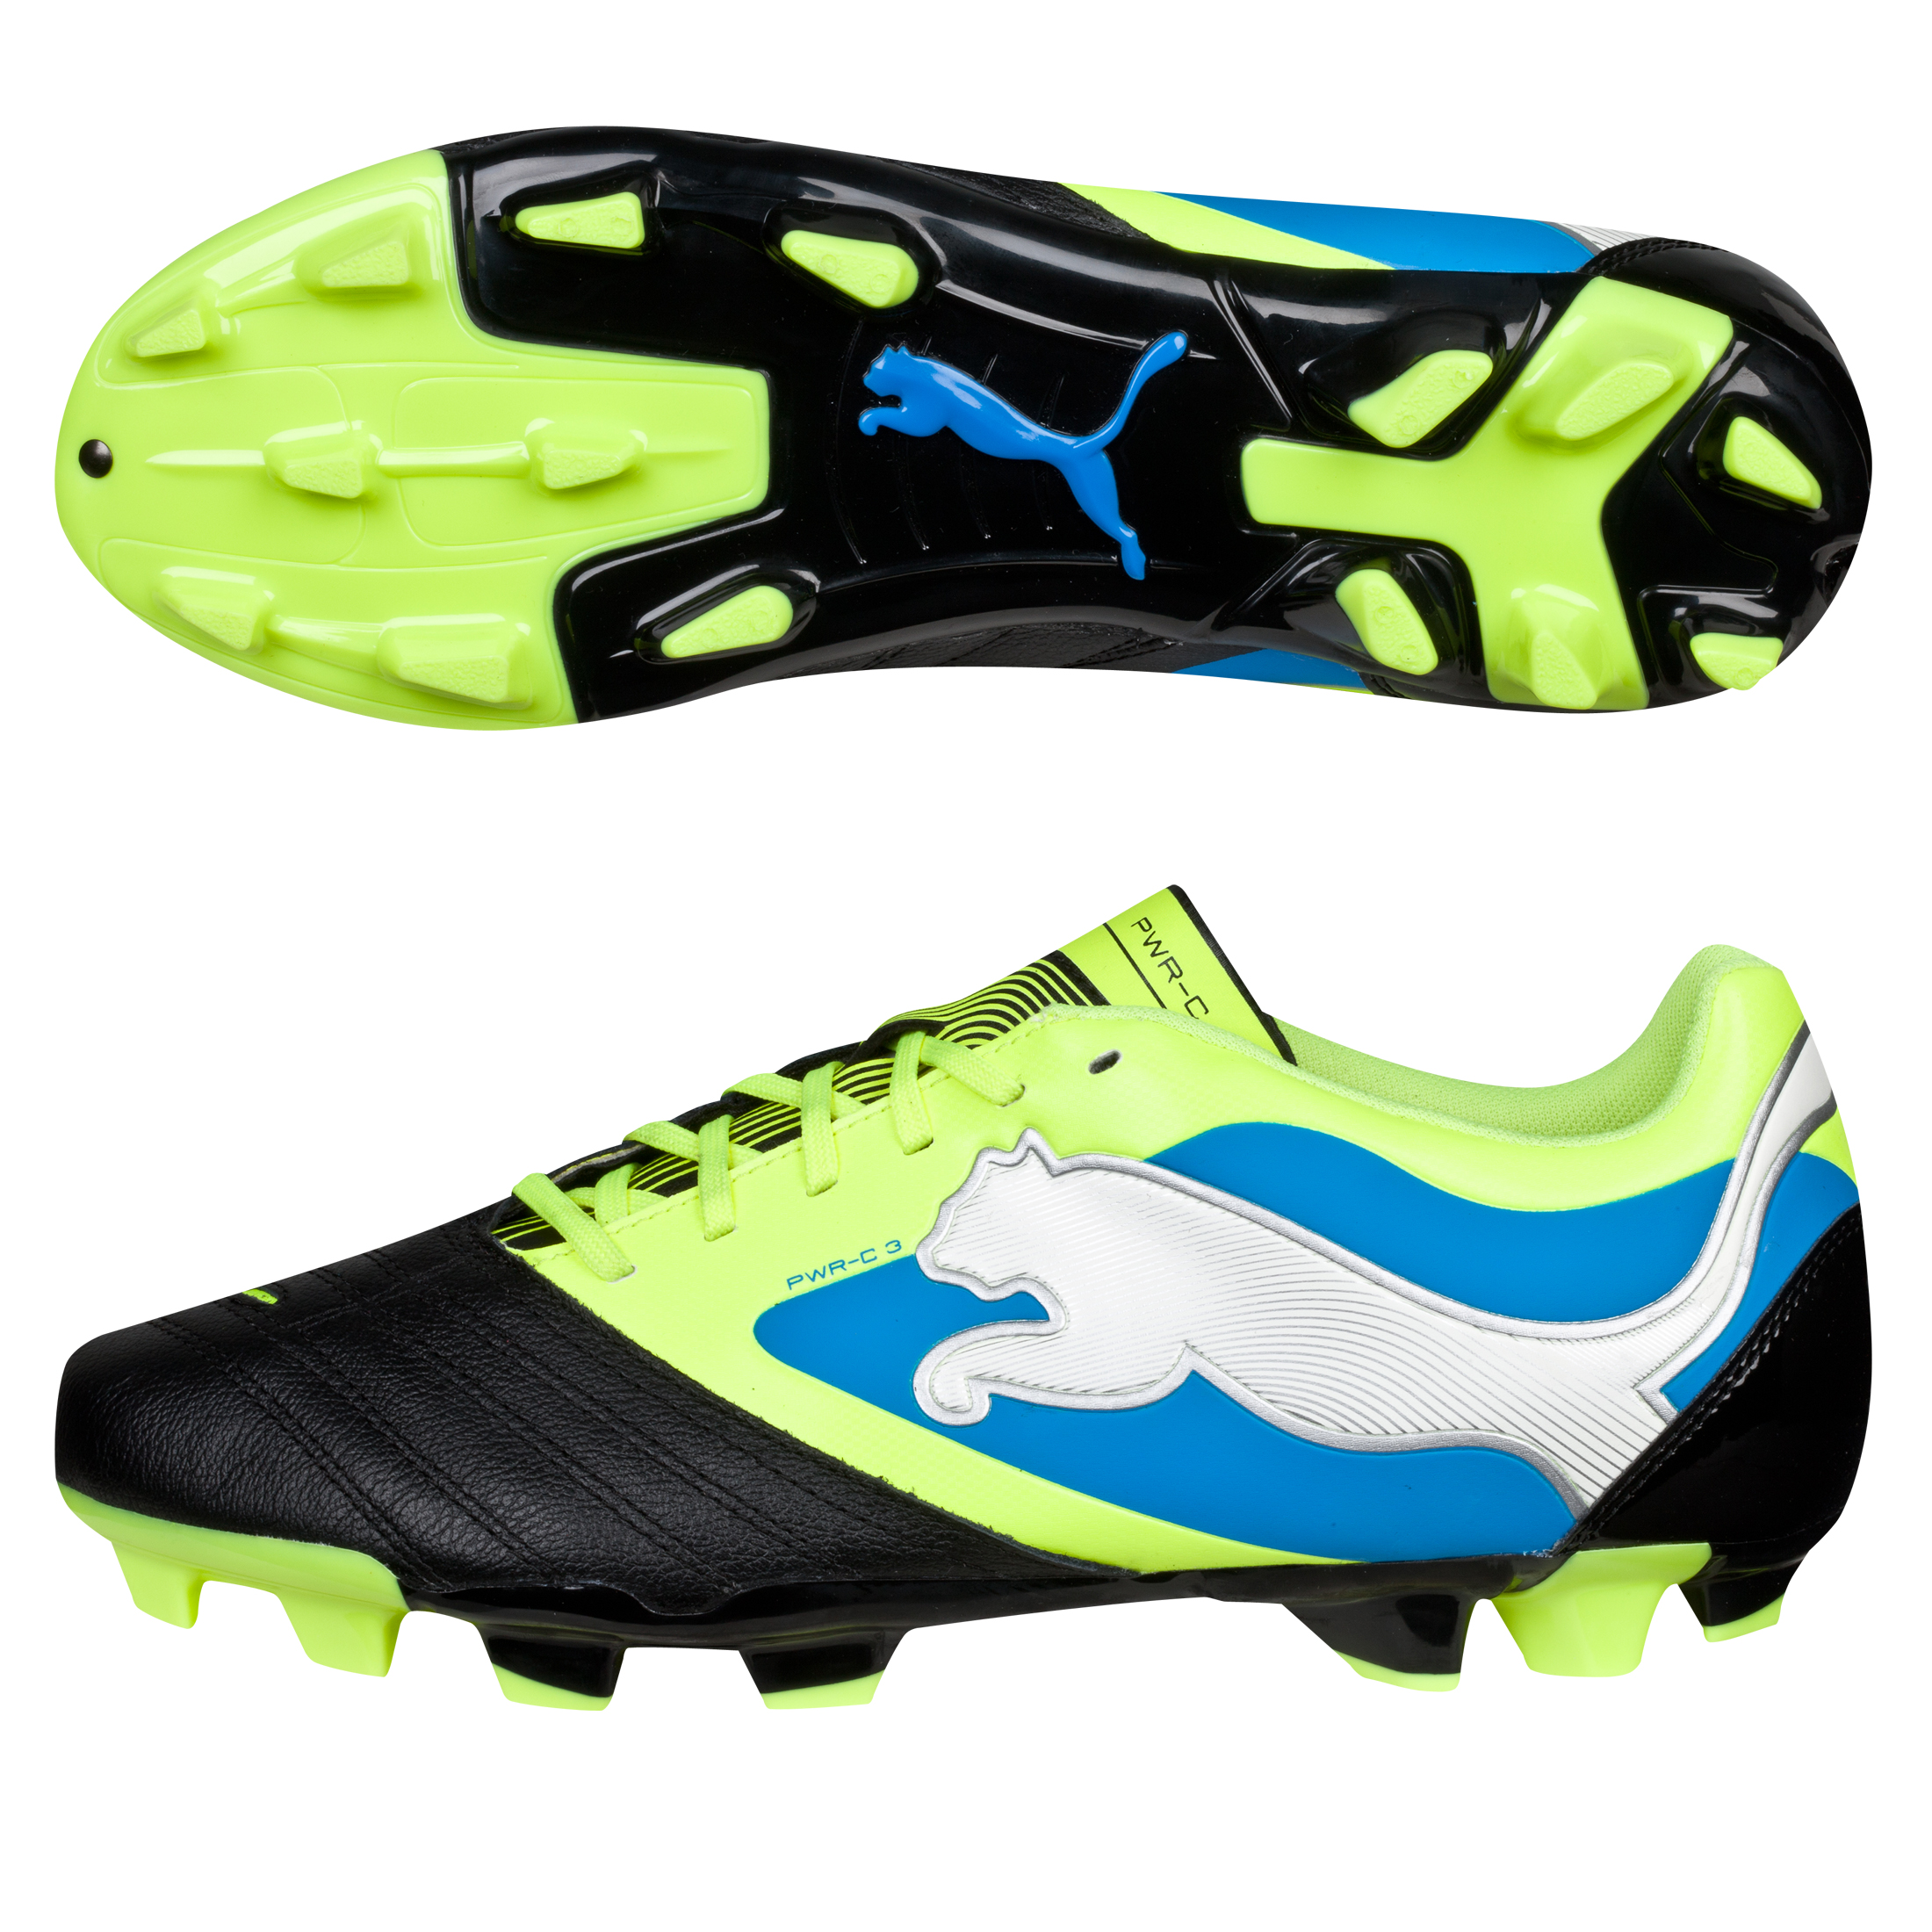 Puma PowerCat 3 Firm Ground Football Boots Black